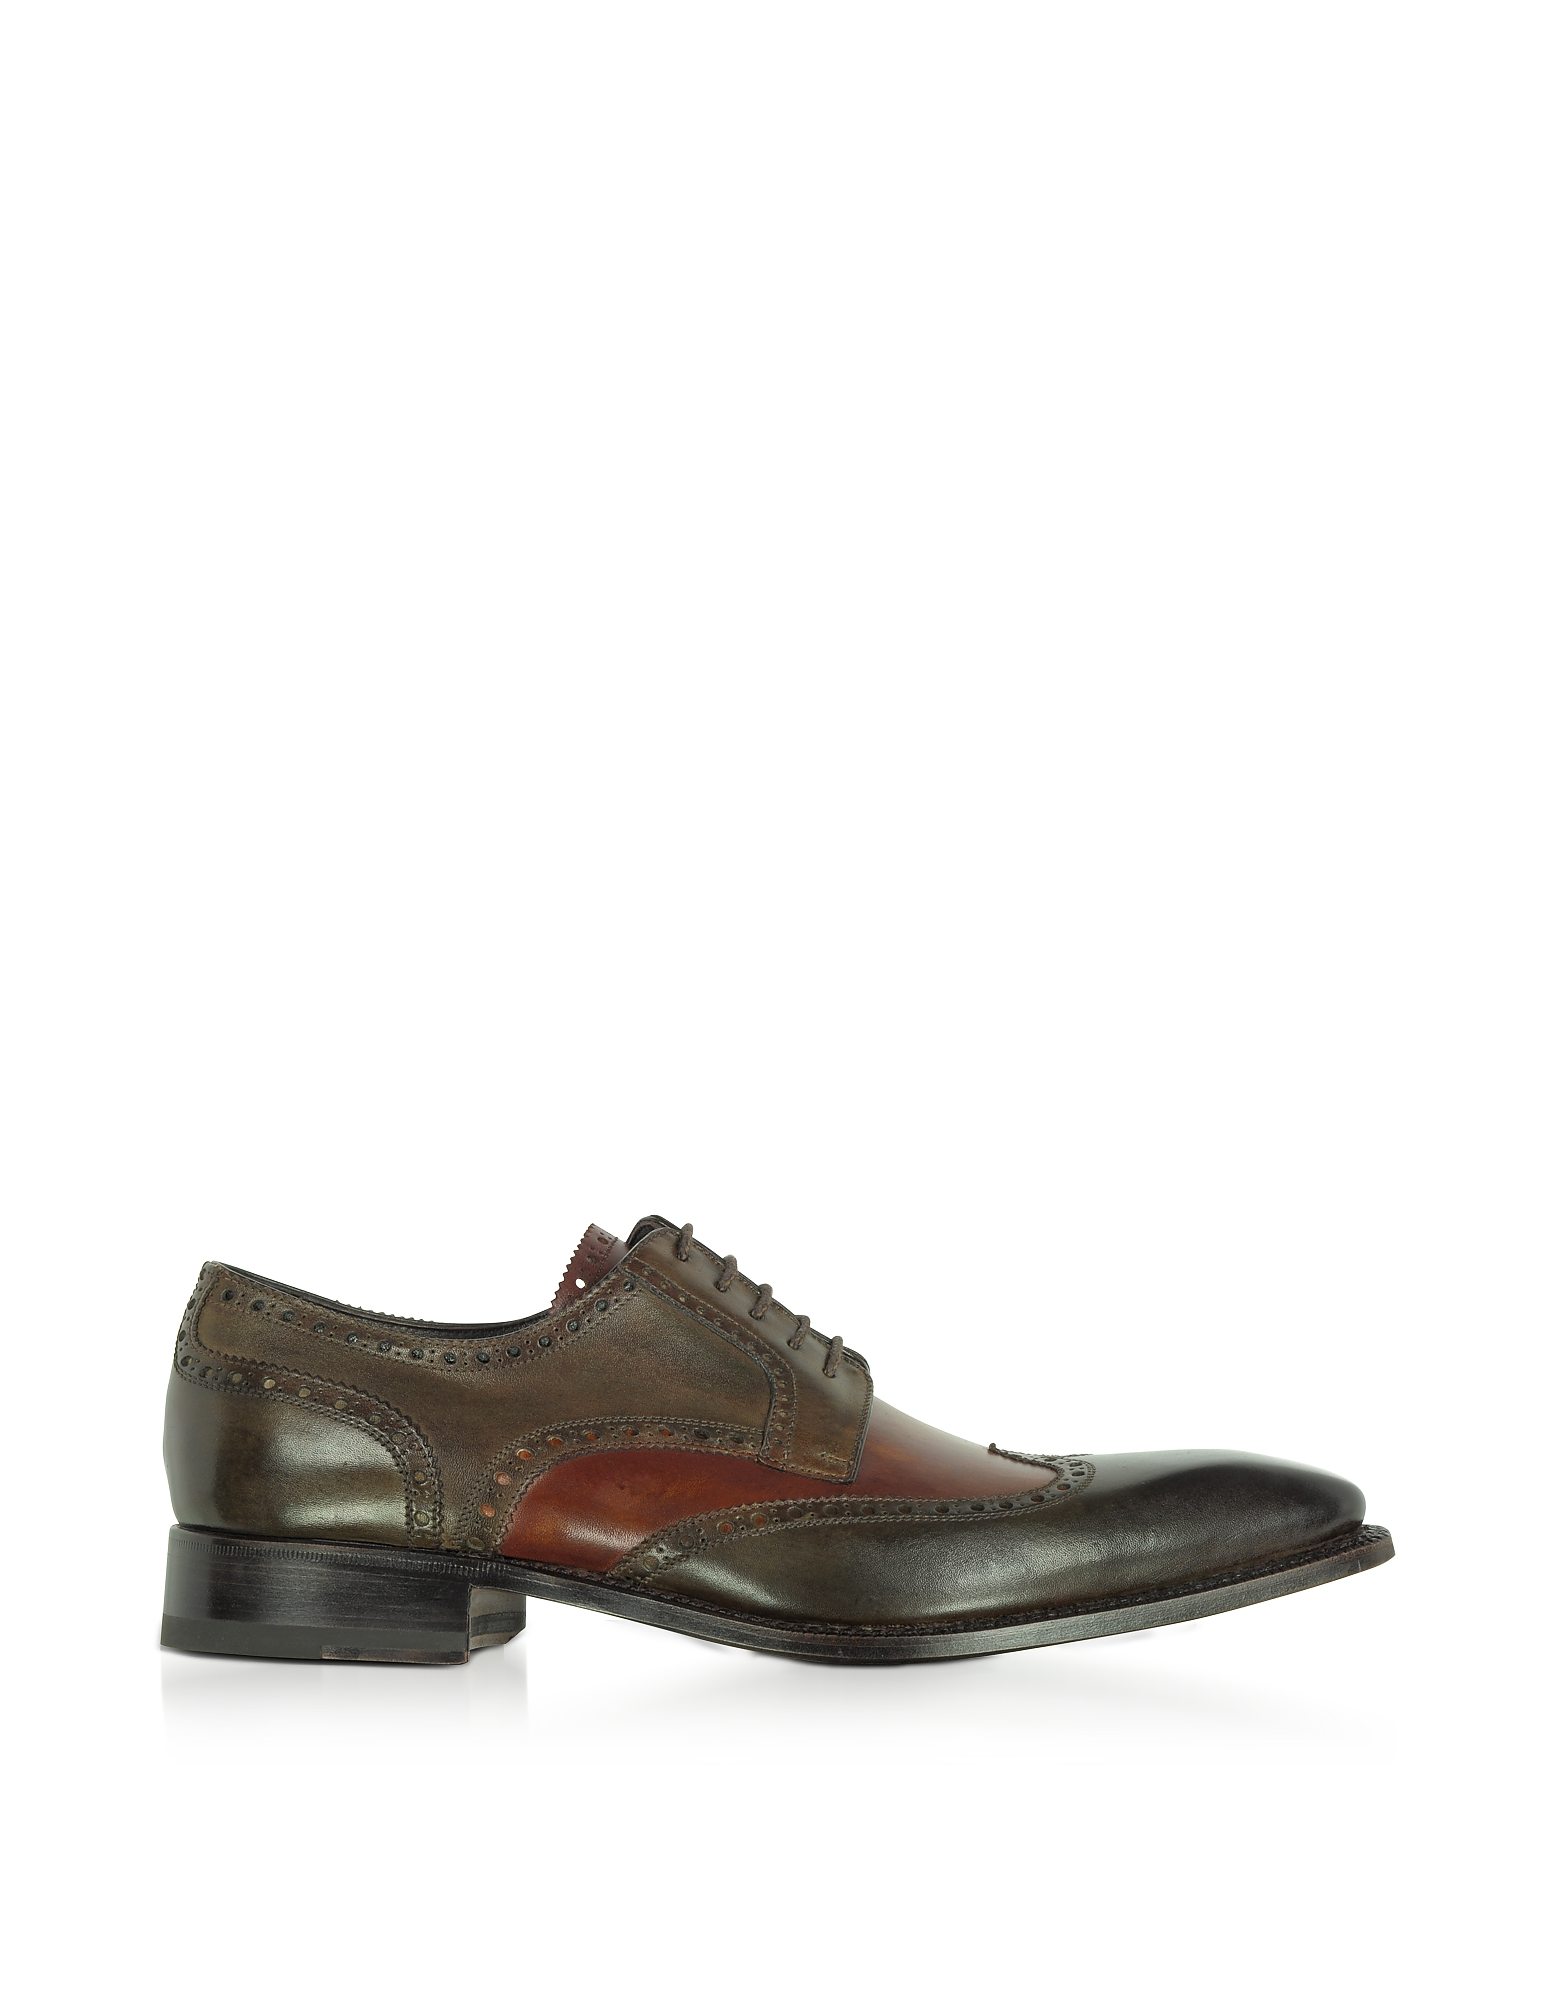 Forzieri Shoes, Two-Tone Italian Handcrafted Leather Wingtip Oxford Shoes